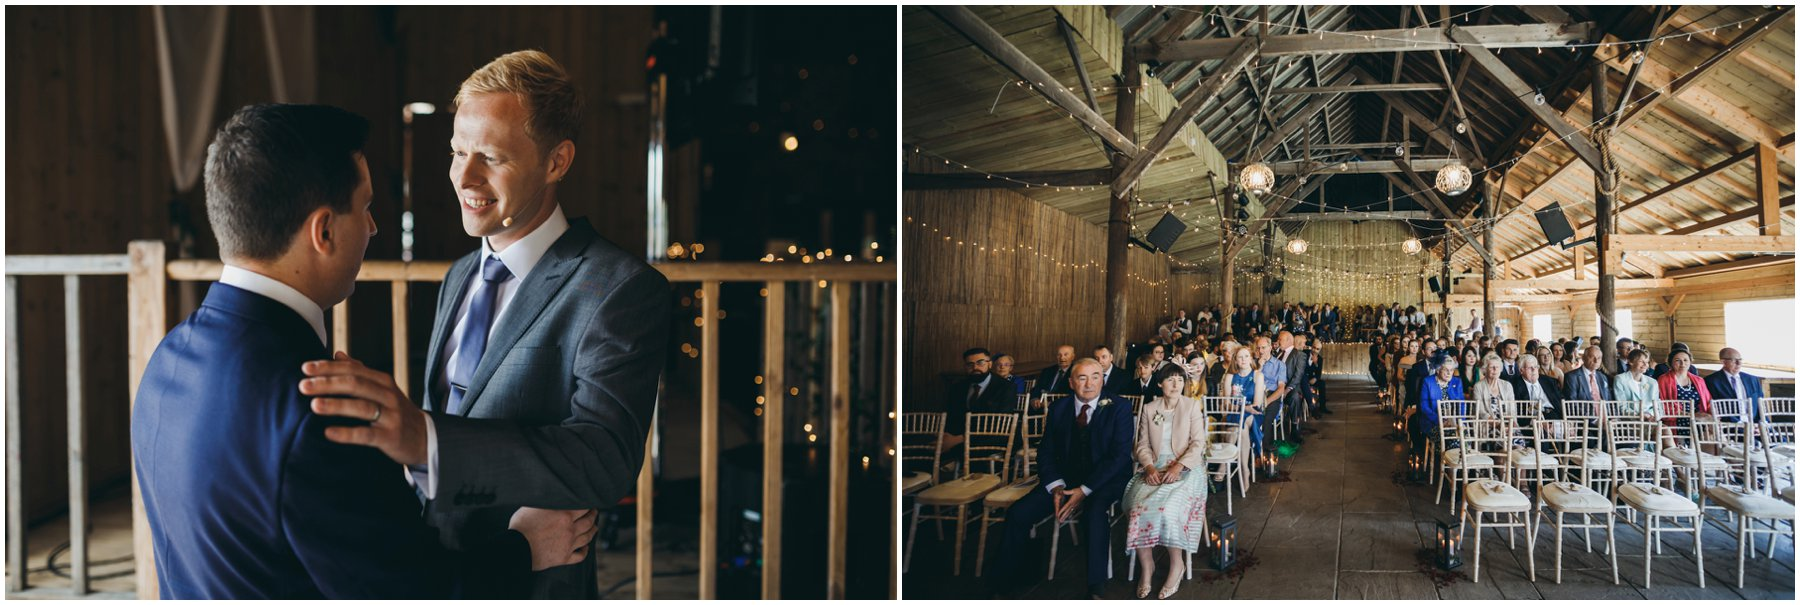 York Maze Wedding Photography